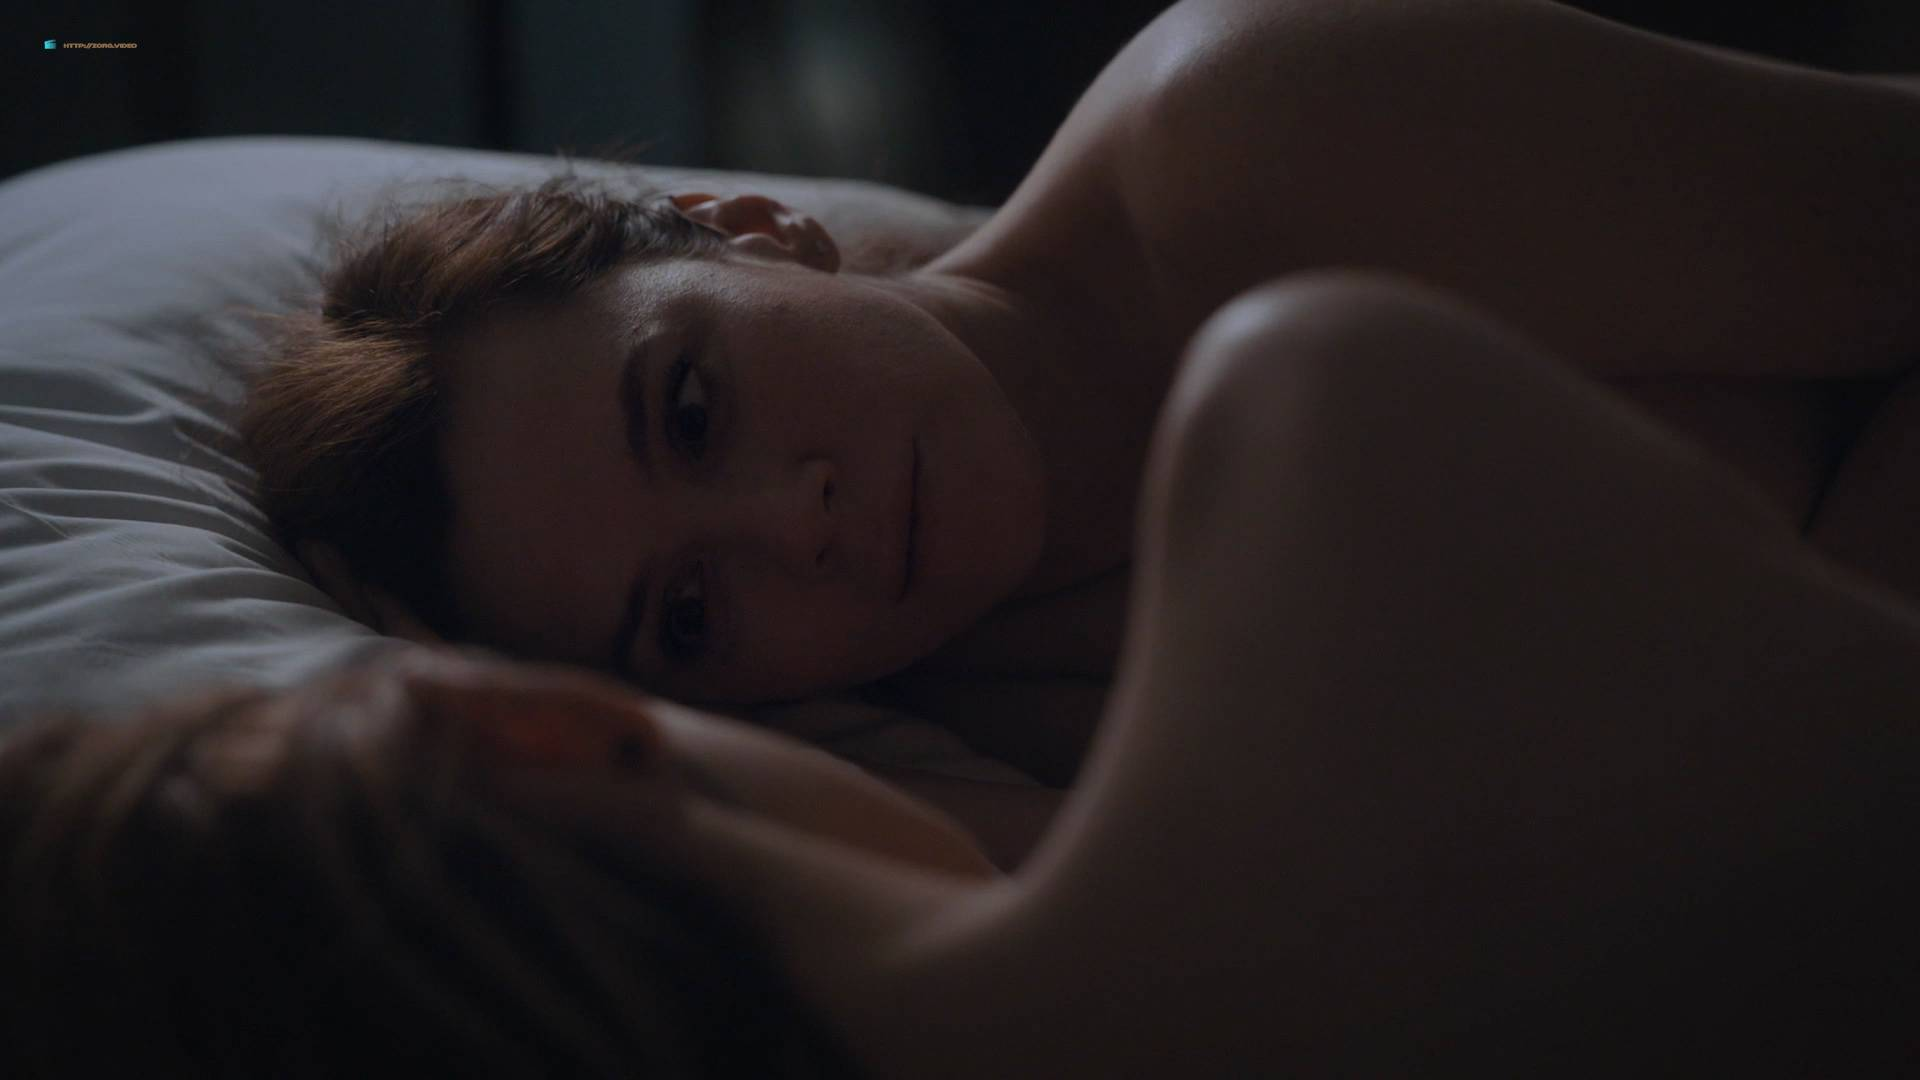 Anna Friel nude and lesbian sex with Louisa Krause - The Girlfriend Experience (2017) s2e3 HD 1080p Web (3)